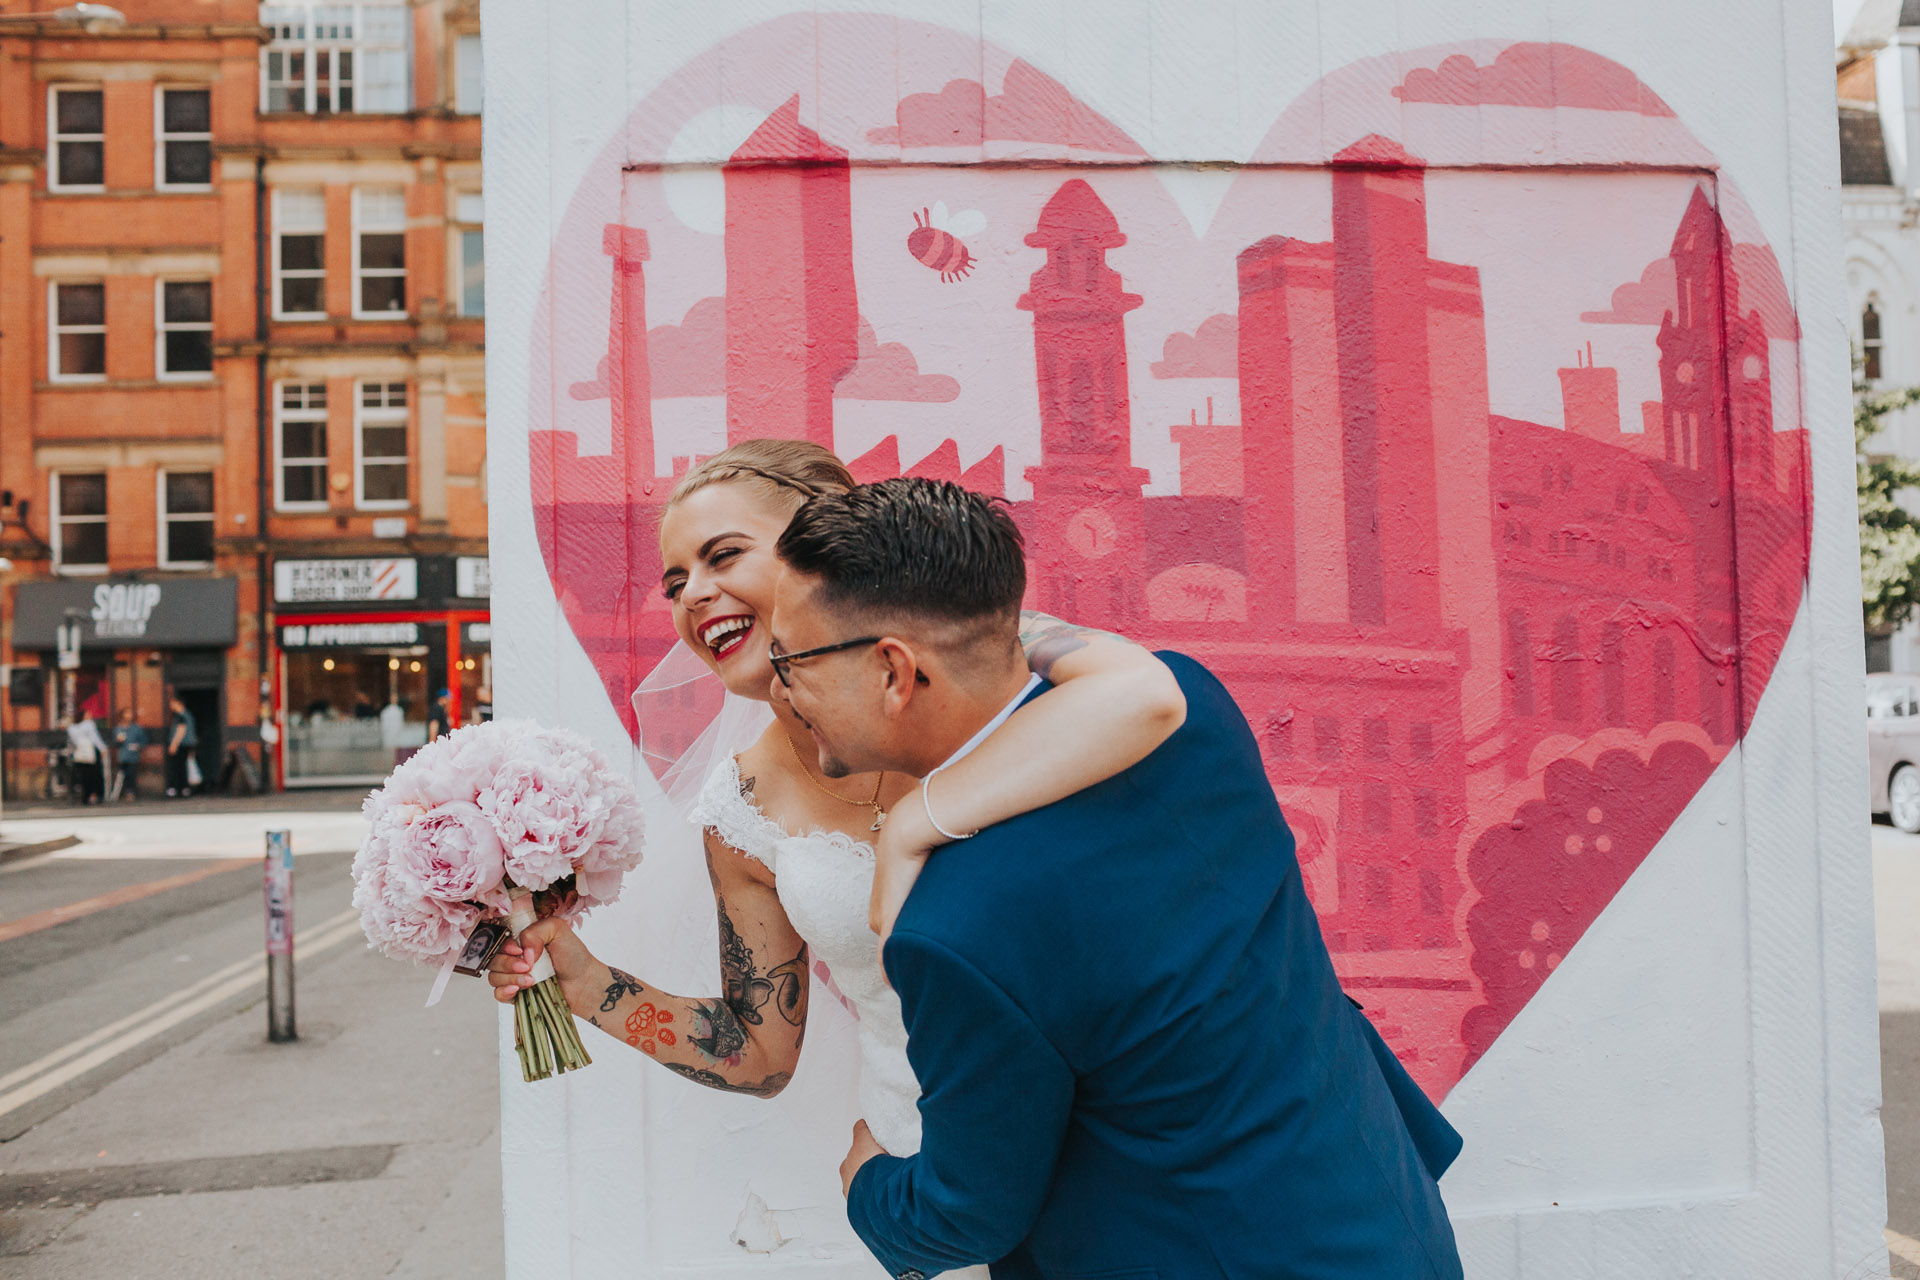 Couple laugh together in front of Manchester Graffiti.